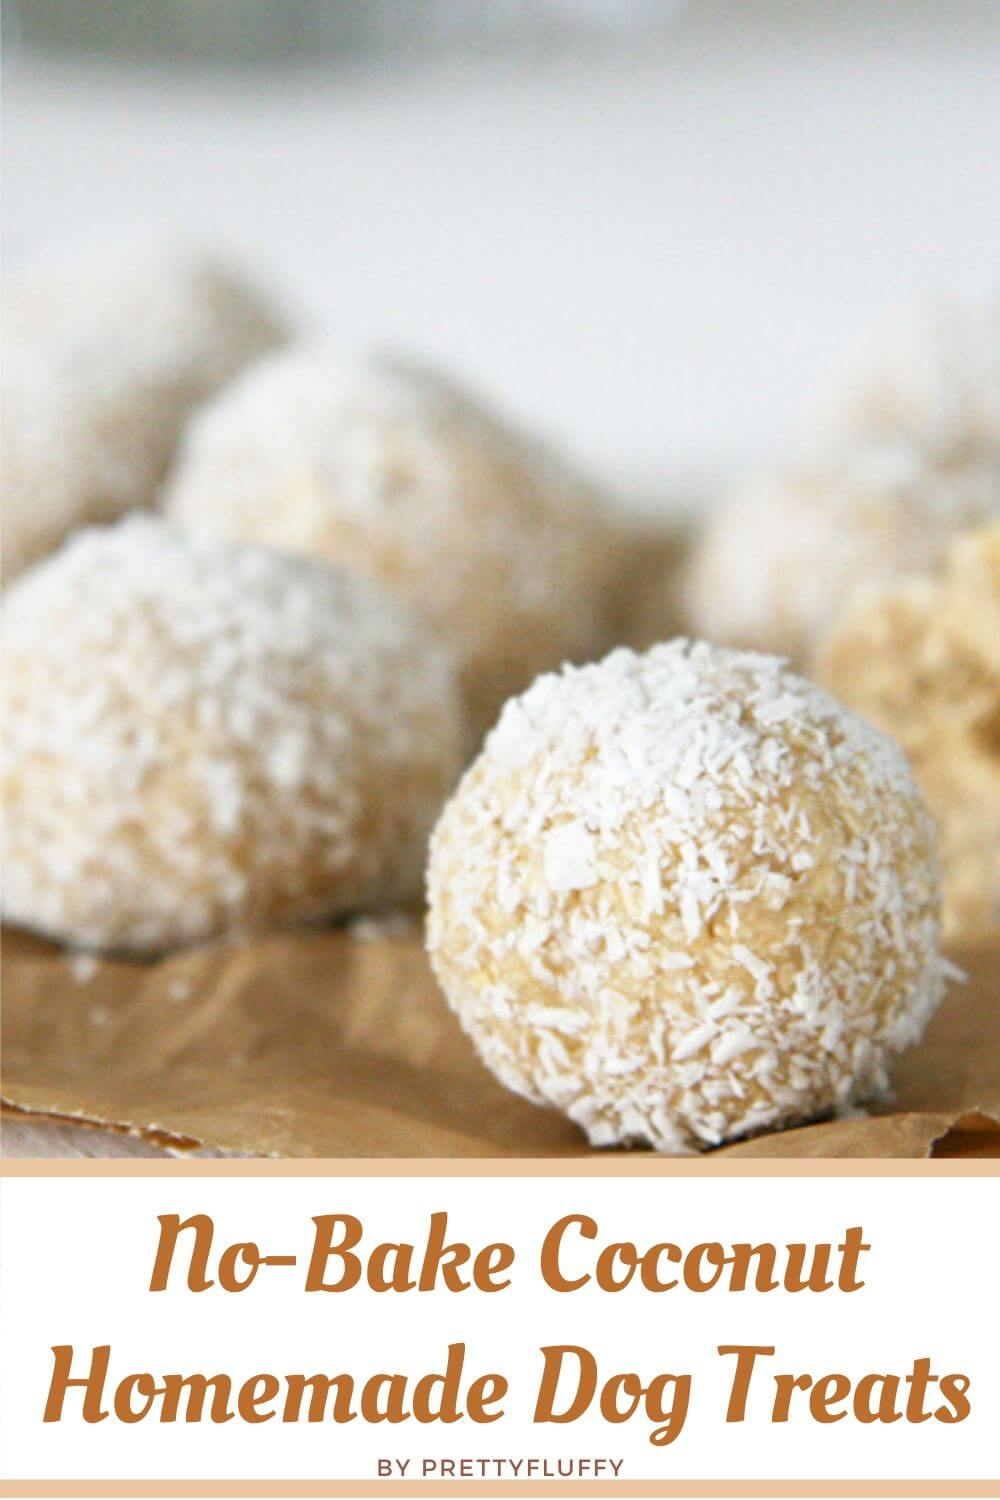 No-Bake Coconut Homemade Dog Treats